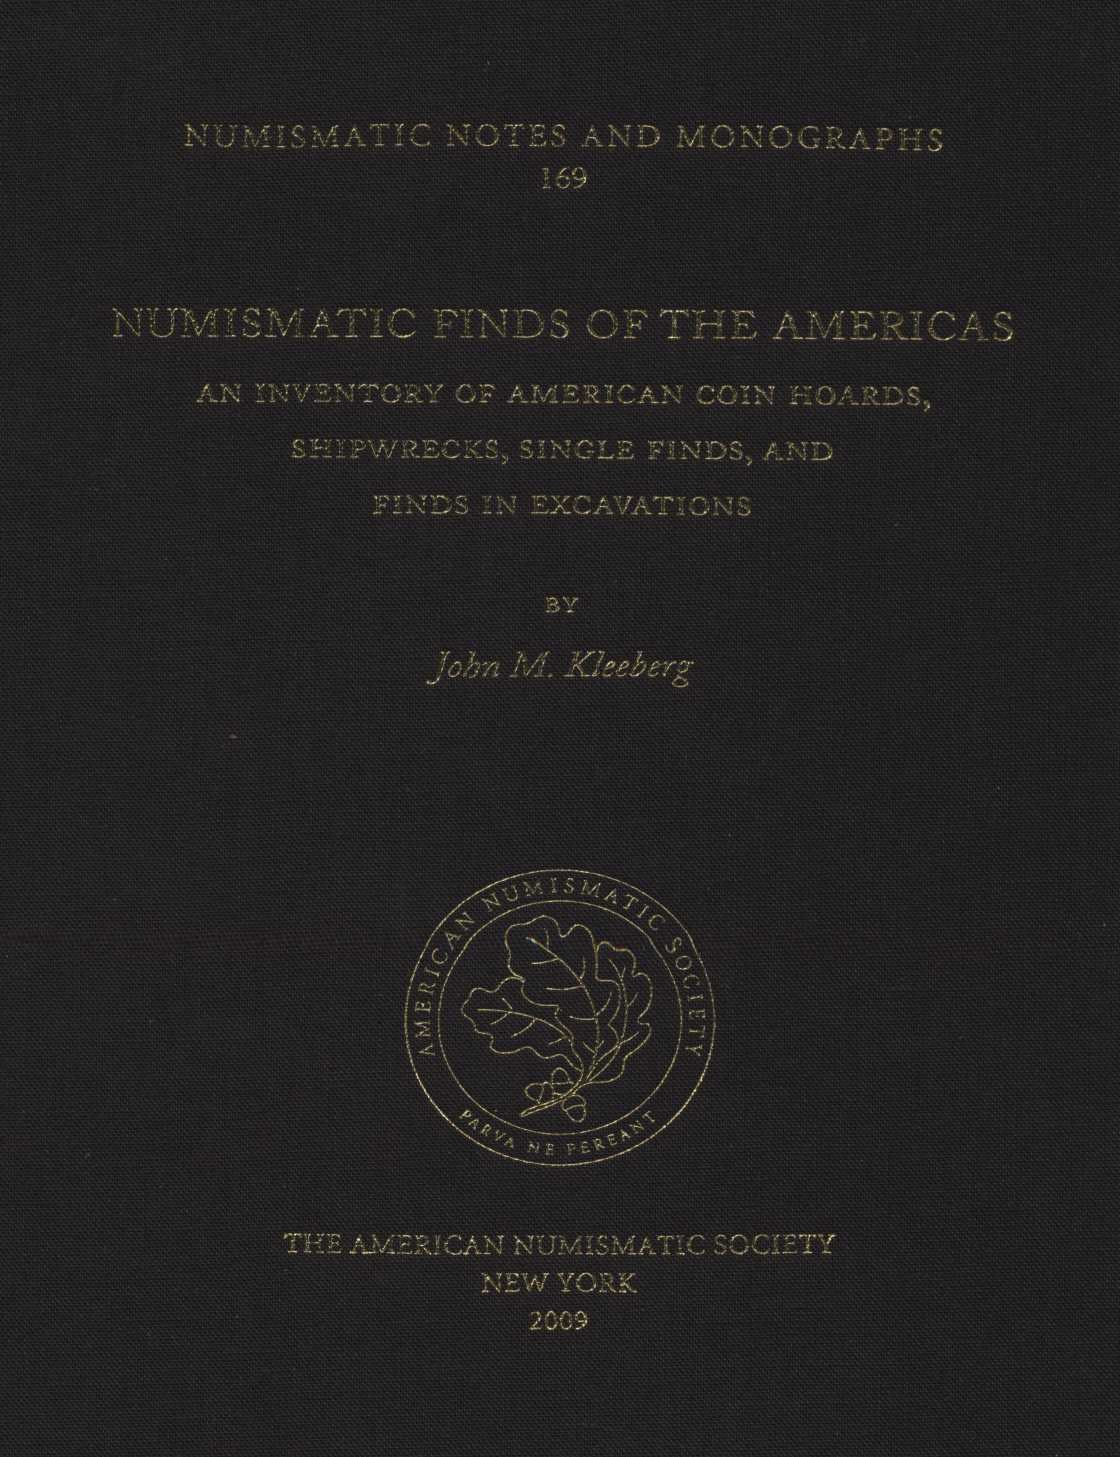 ANS Digital Library: Numismatic finds of the Americas